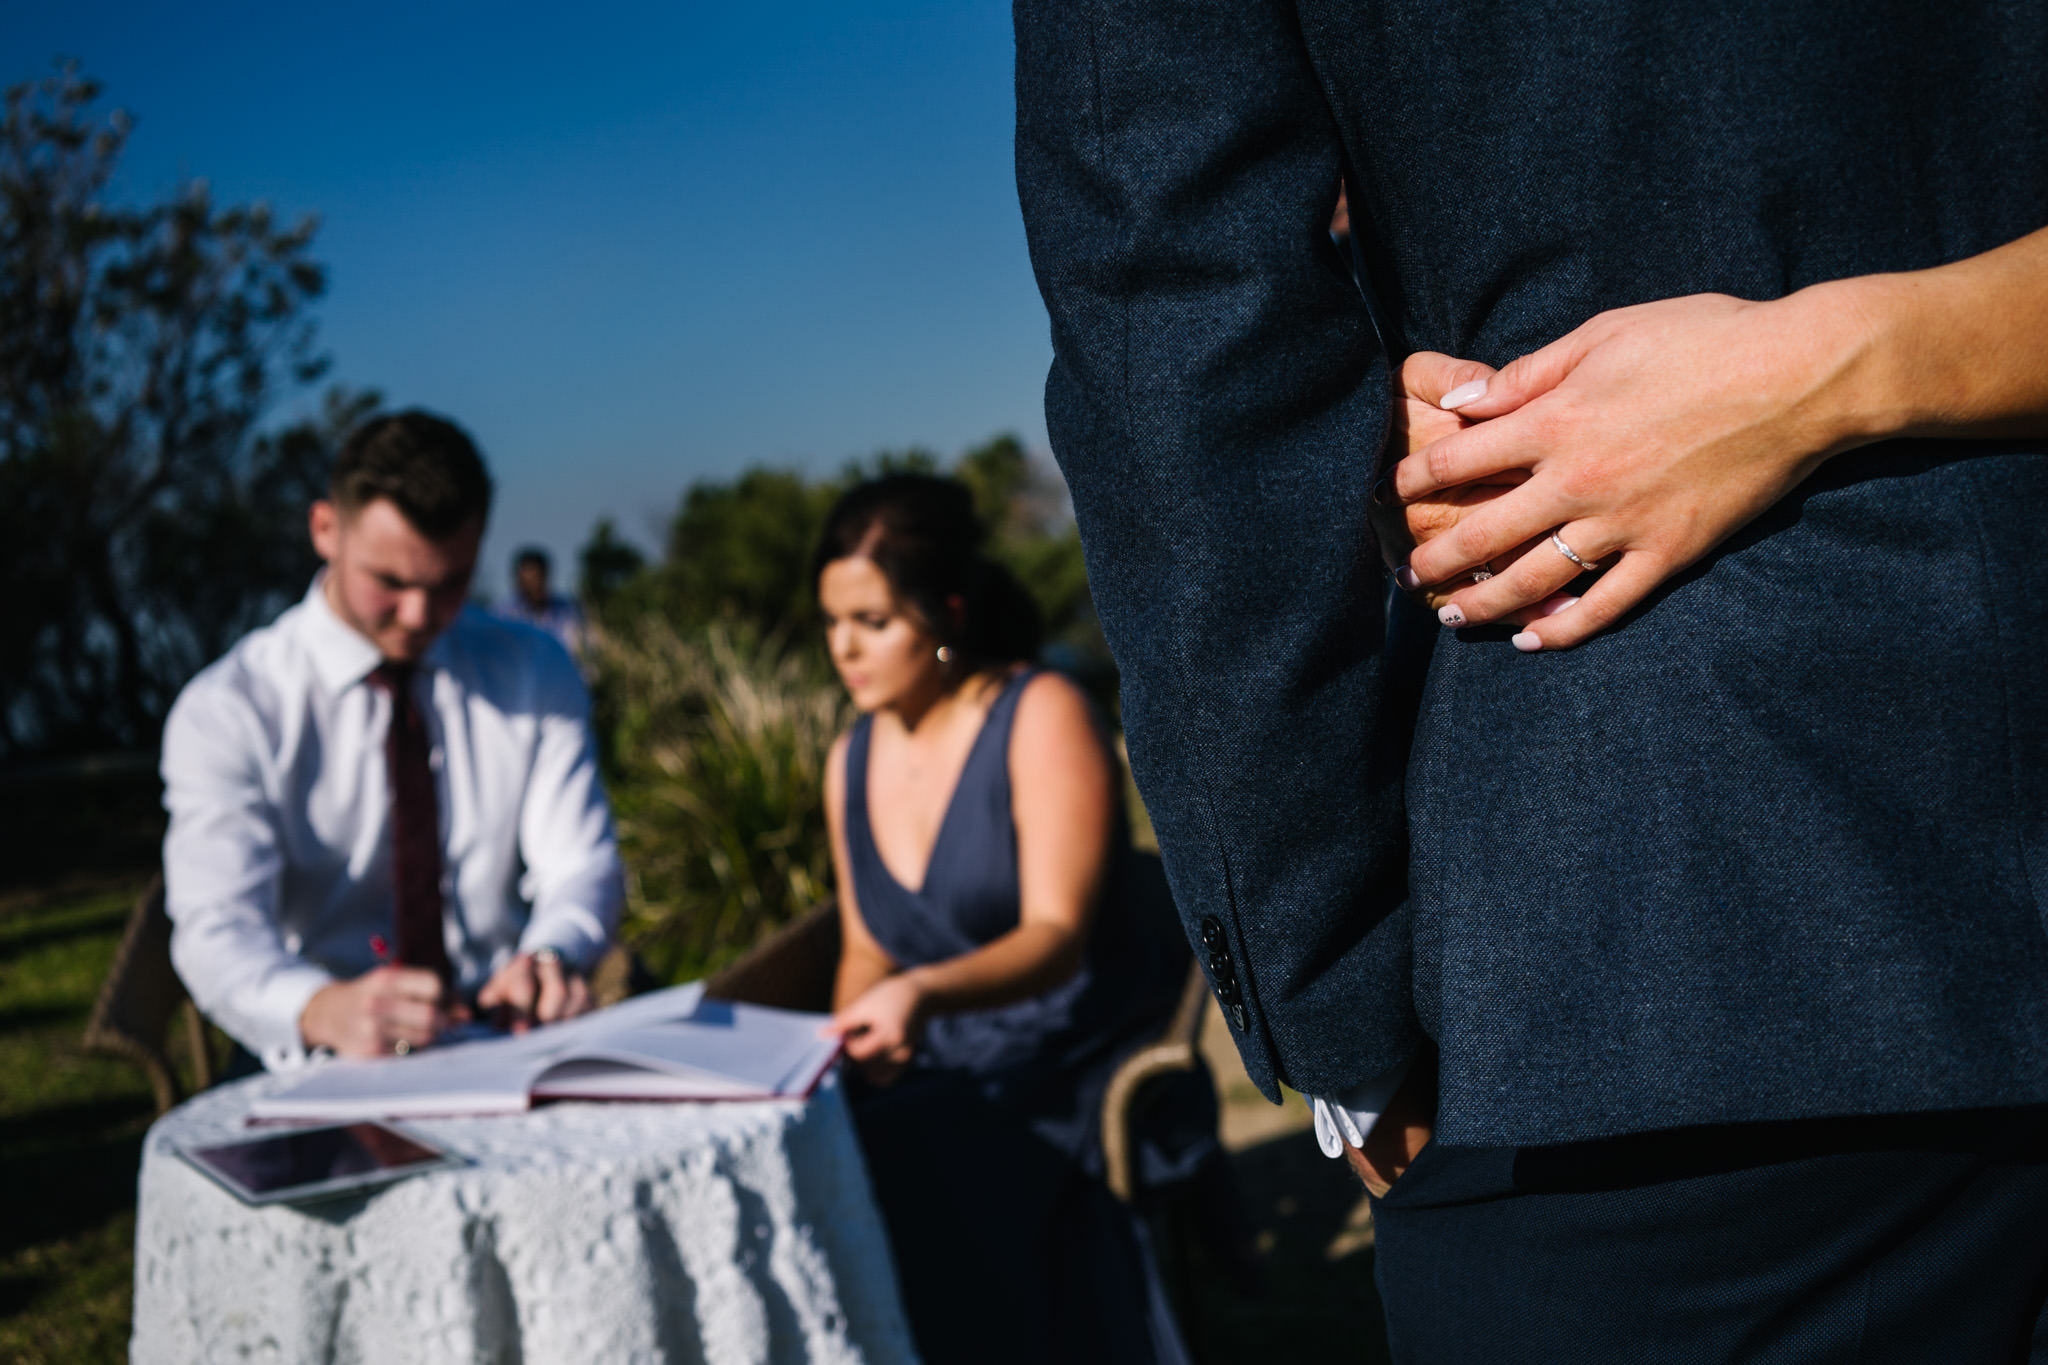 Bride and groom embrace during document signing